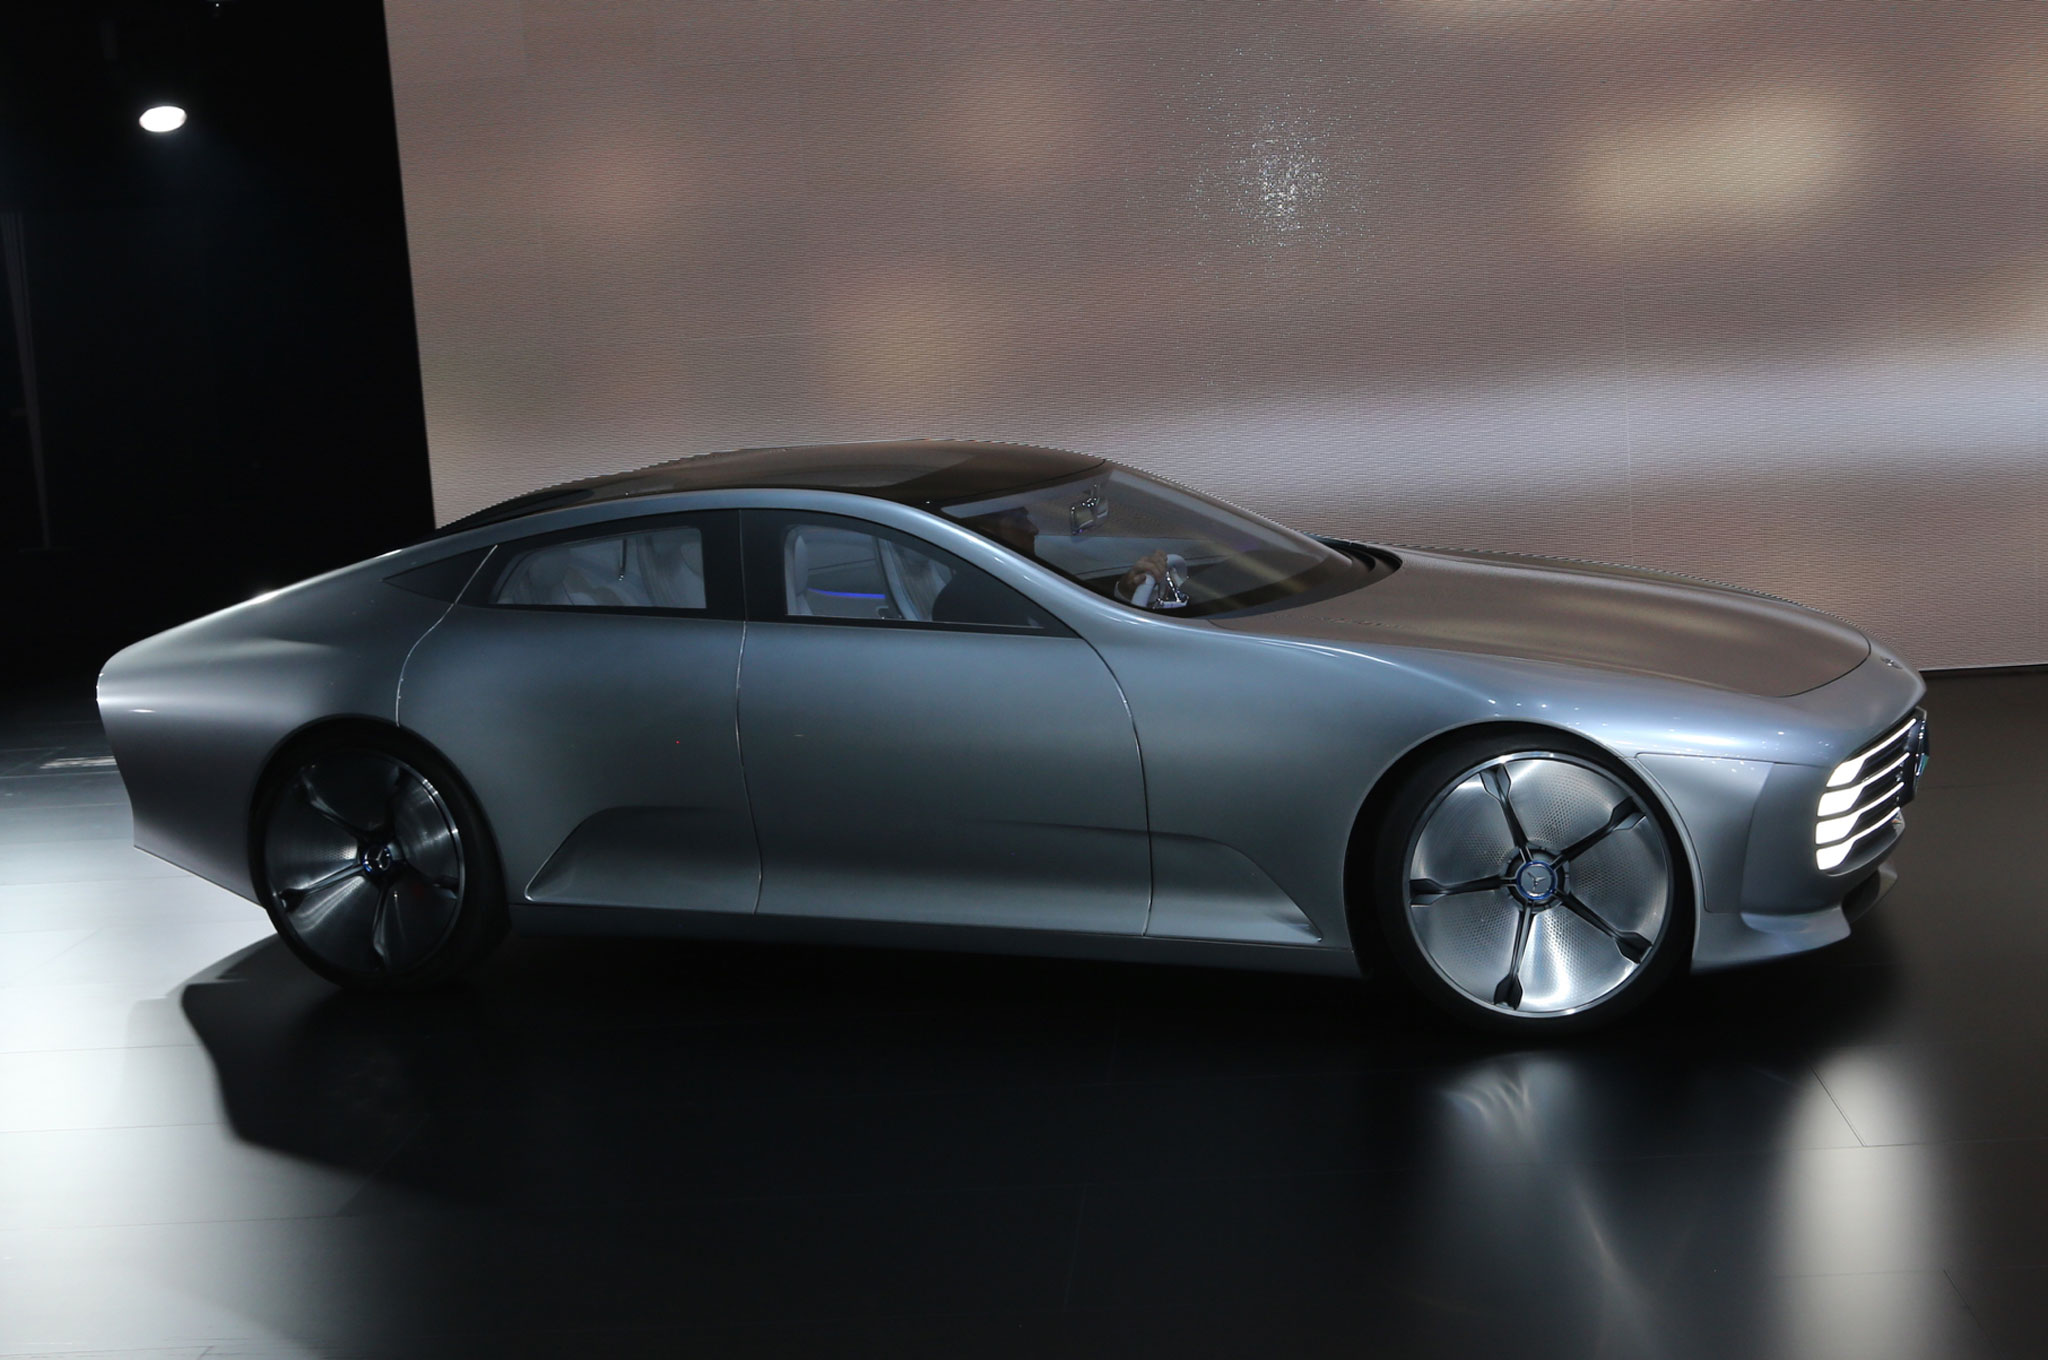 Mercedes benz concept iaa is a study in aerodynamics for Mercedes benz concept